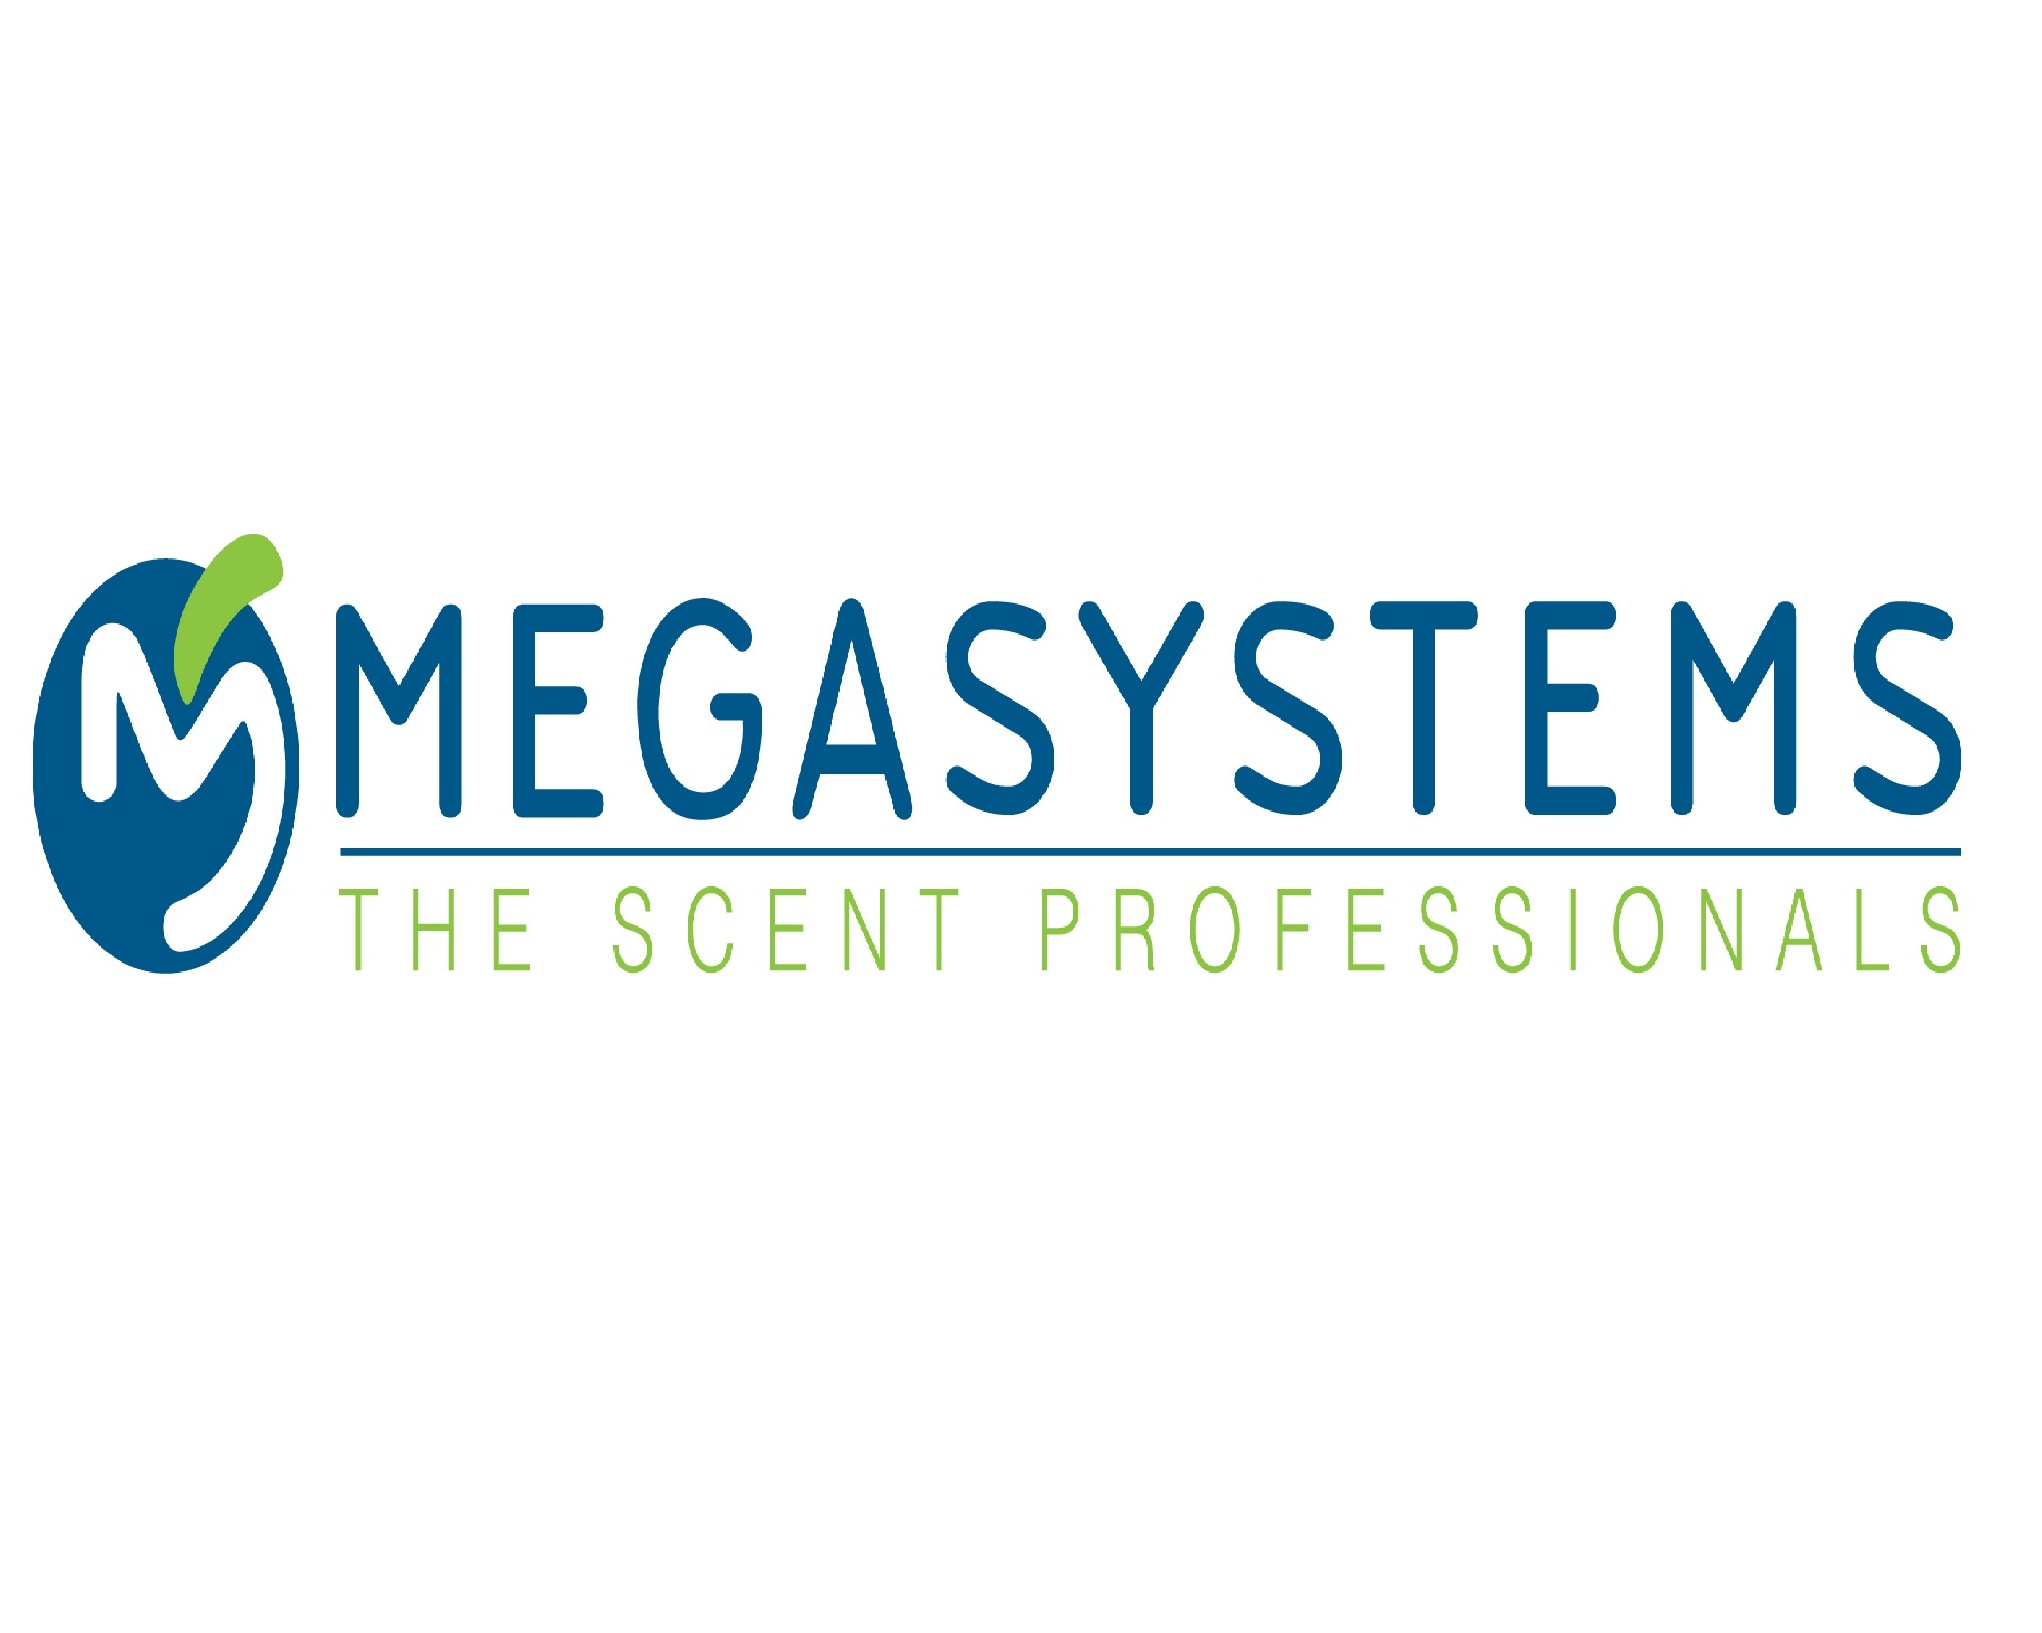 MEGA_SYSTEMS-Cropped